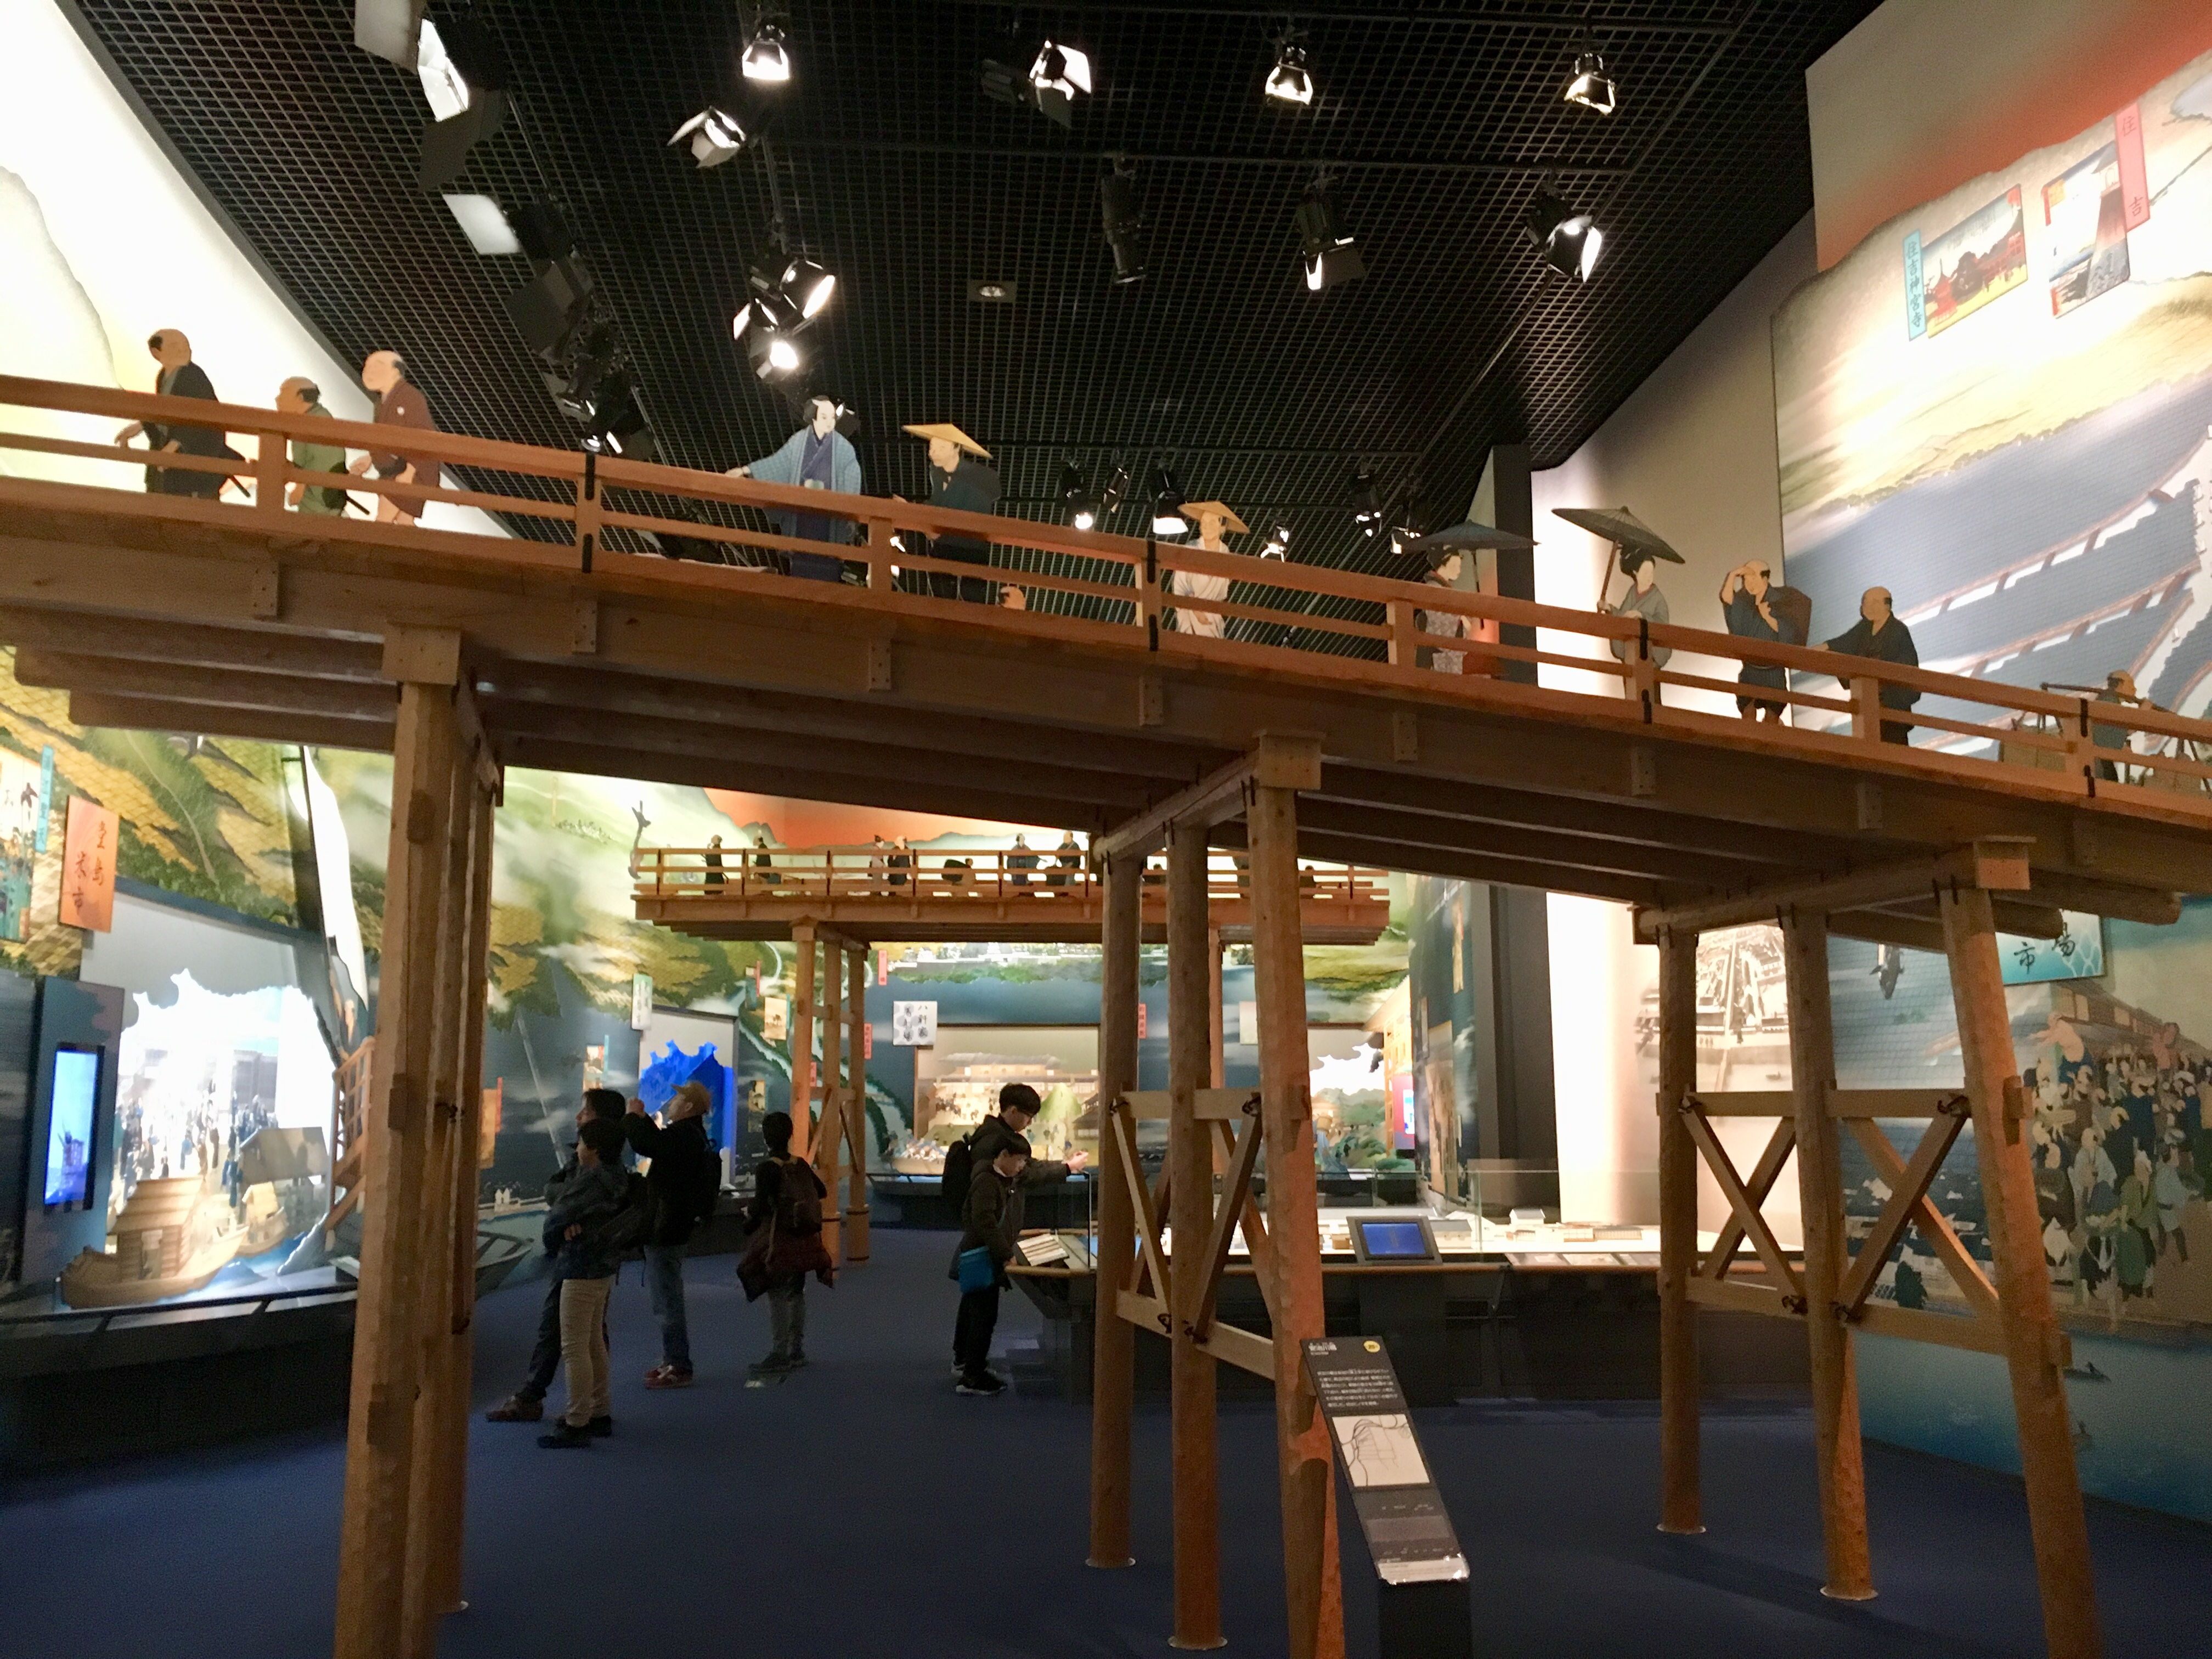 model bridge of one of Osaka many old bridges in the Osaka history museum